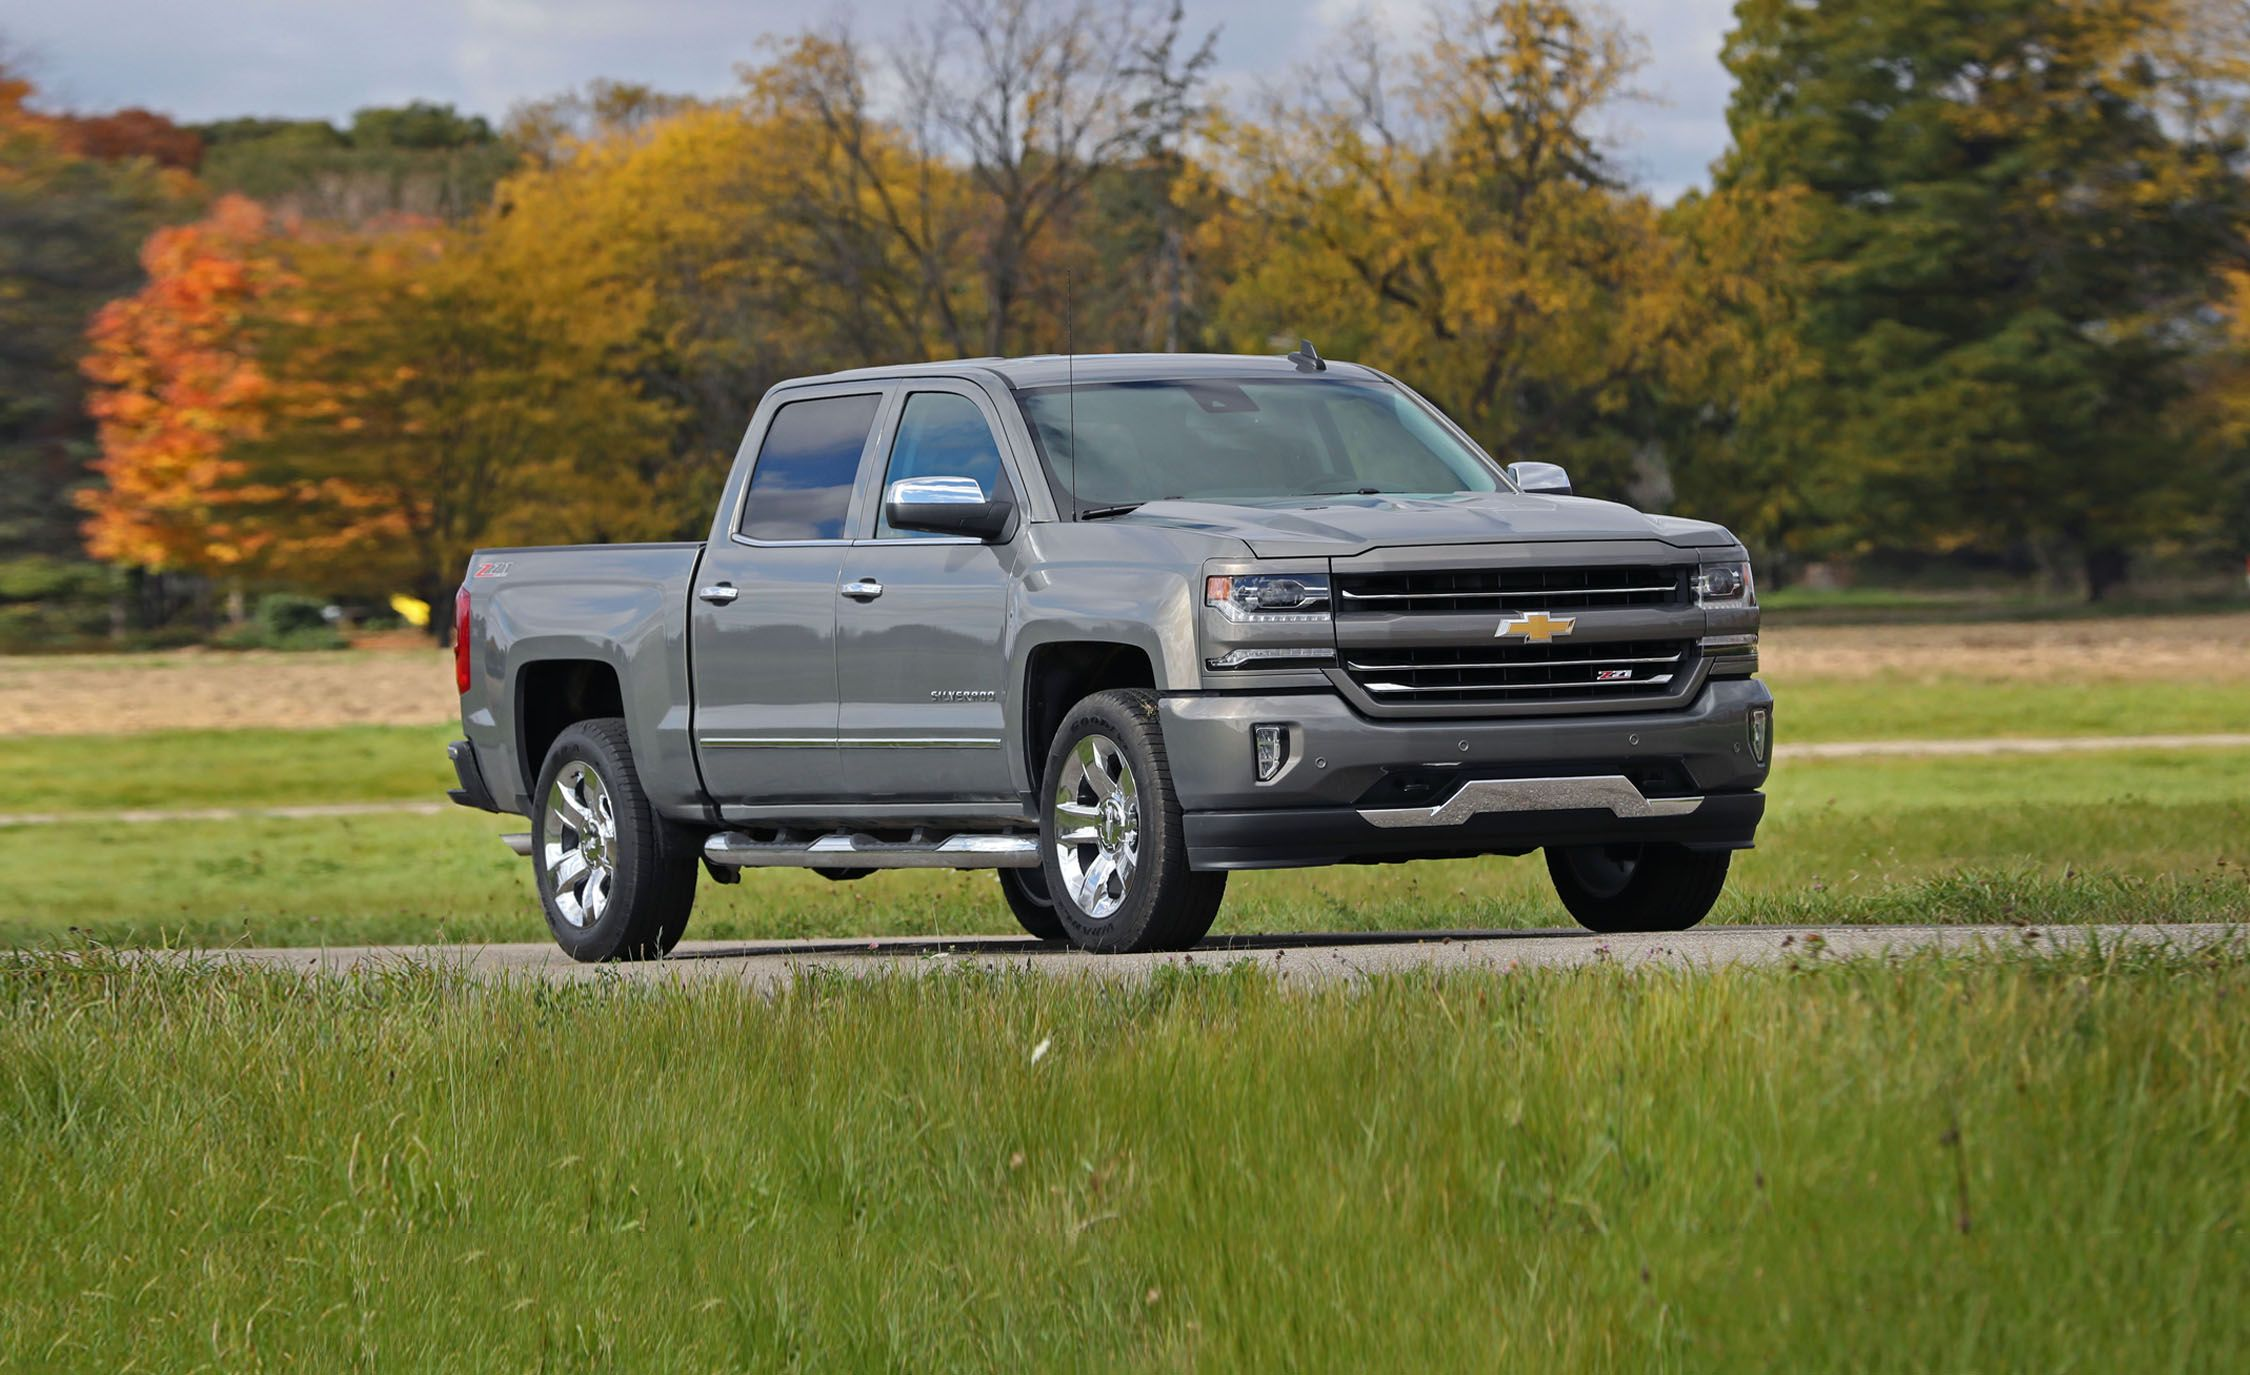 2018 Chevrolet Silverado 1500 | Interior Review | Car and ...